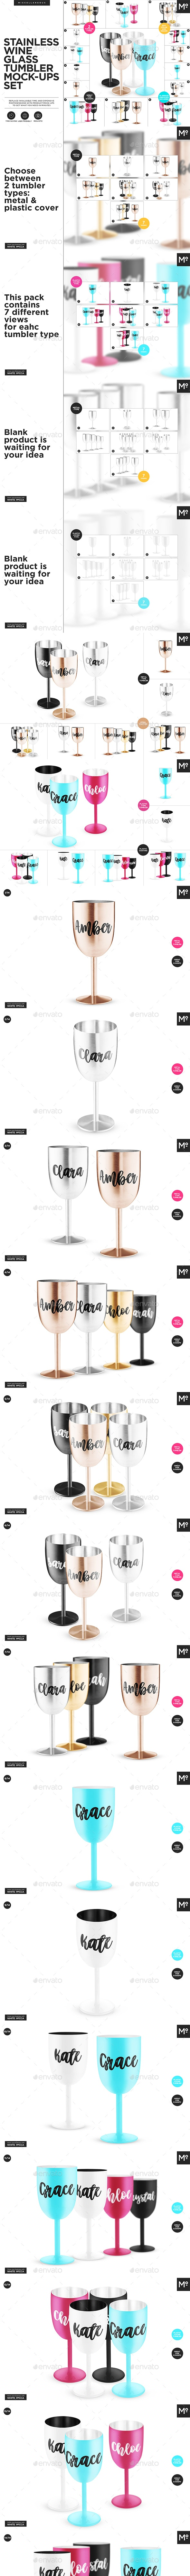 Stainless Wine Glass Tumblers Mock-ups Set - Food and Drink Packaging